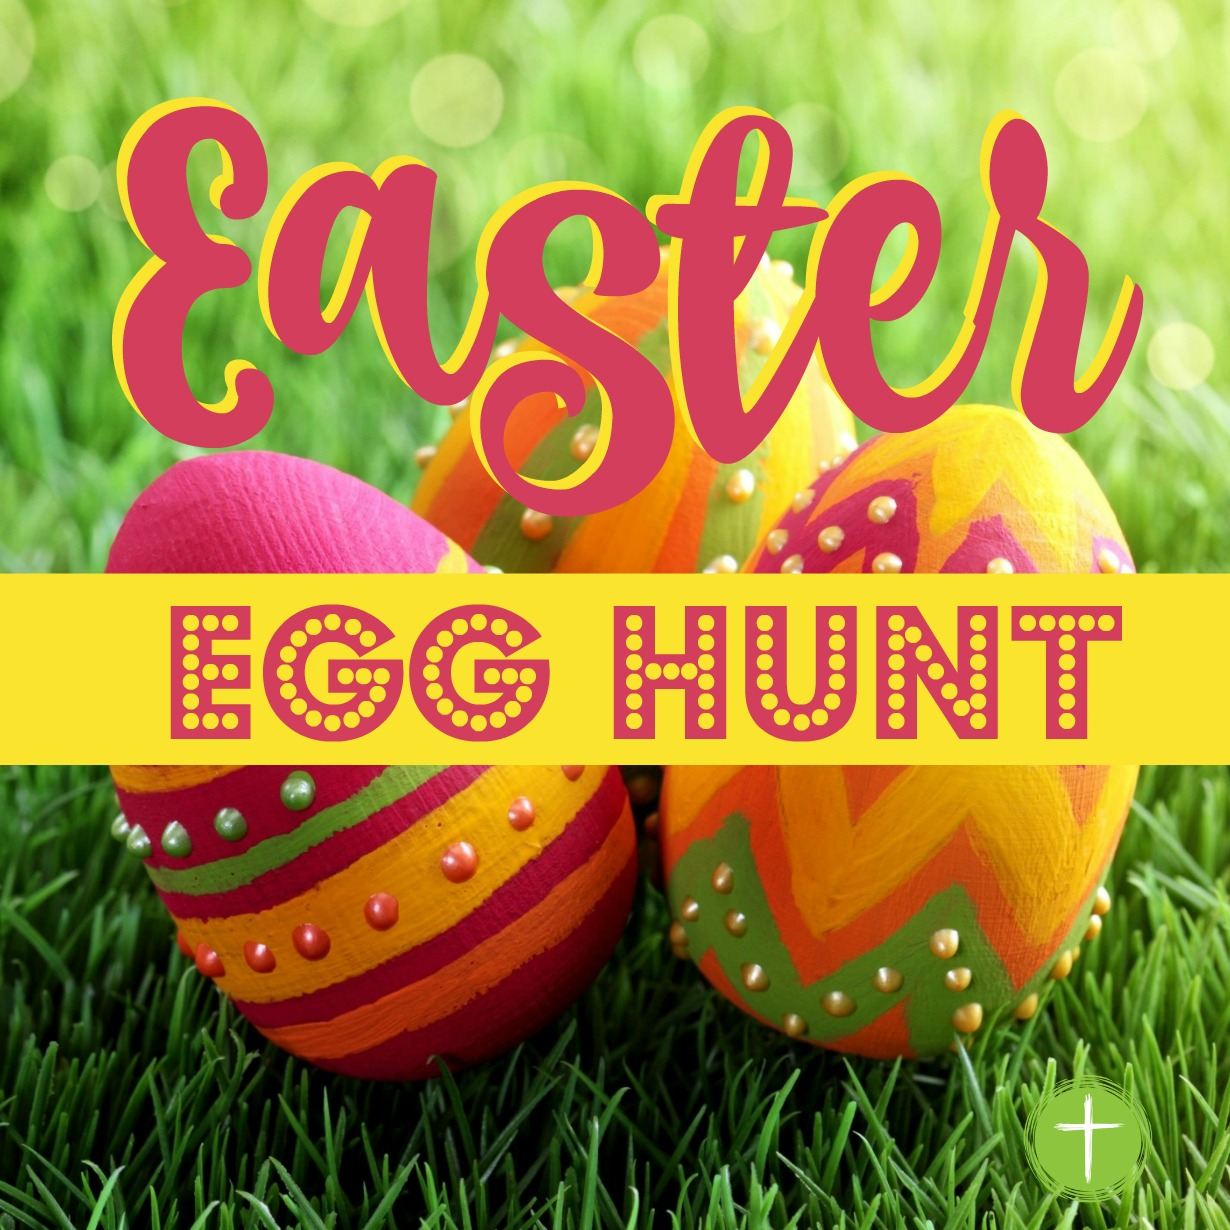 Easter Egg Hunt 16 SQ.JPG